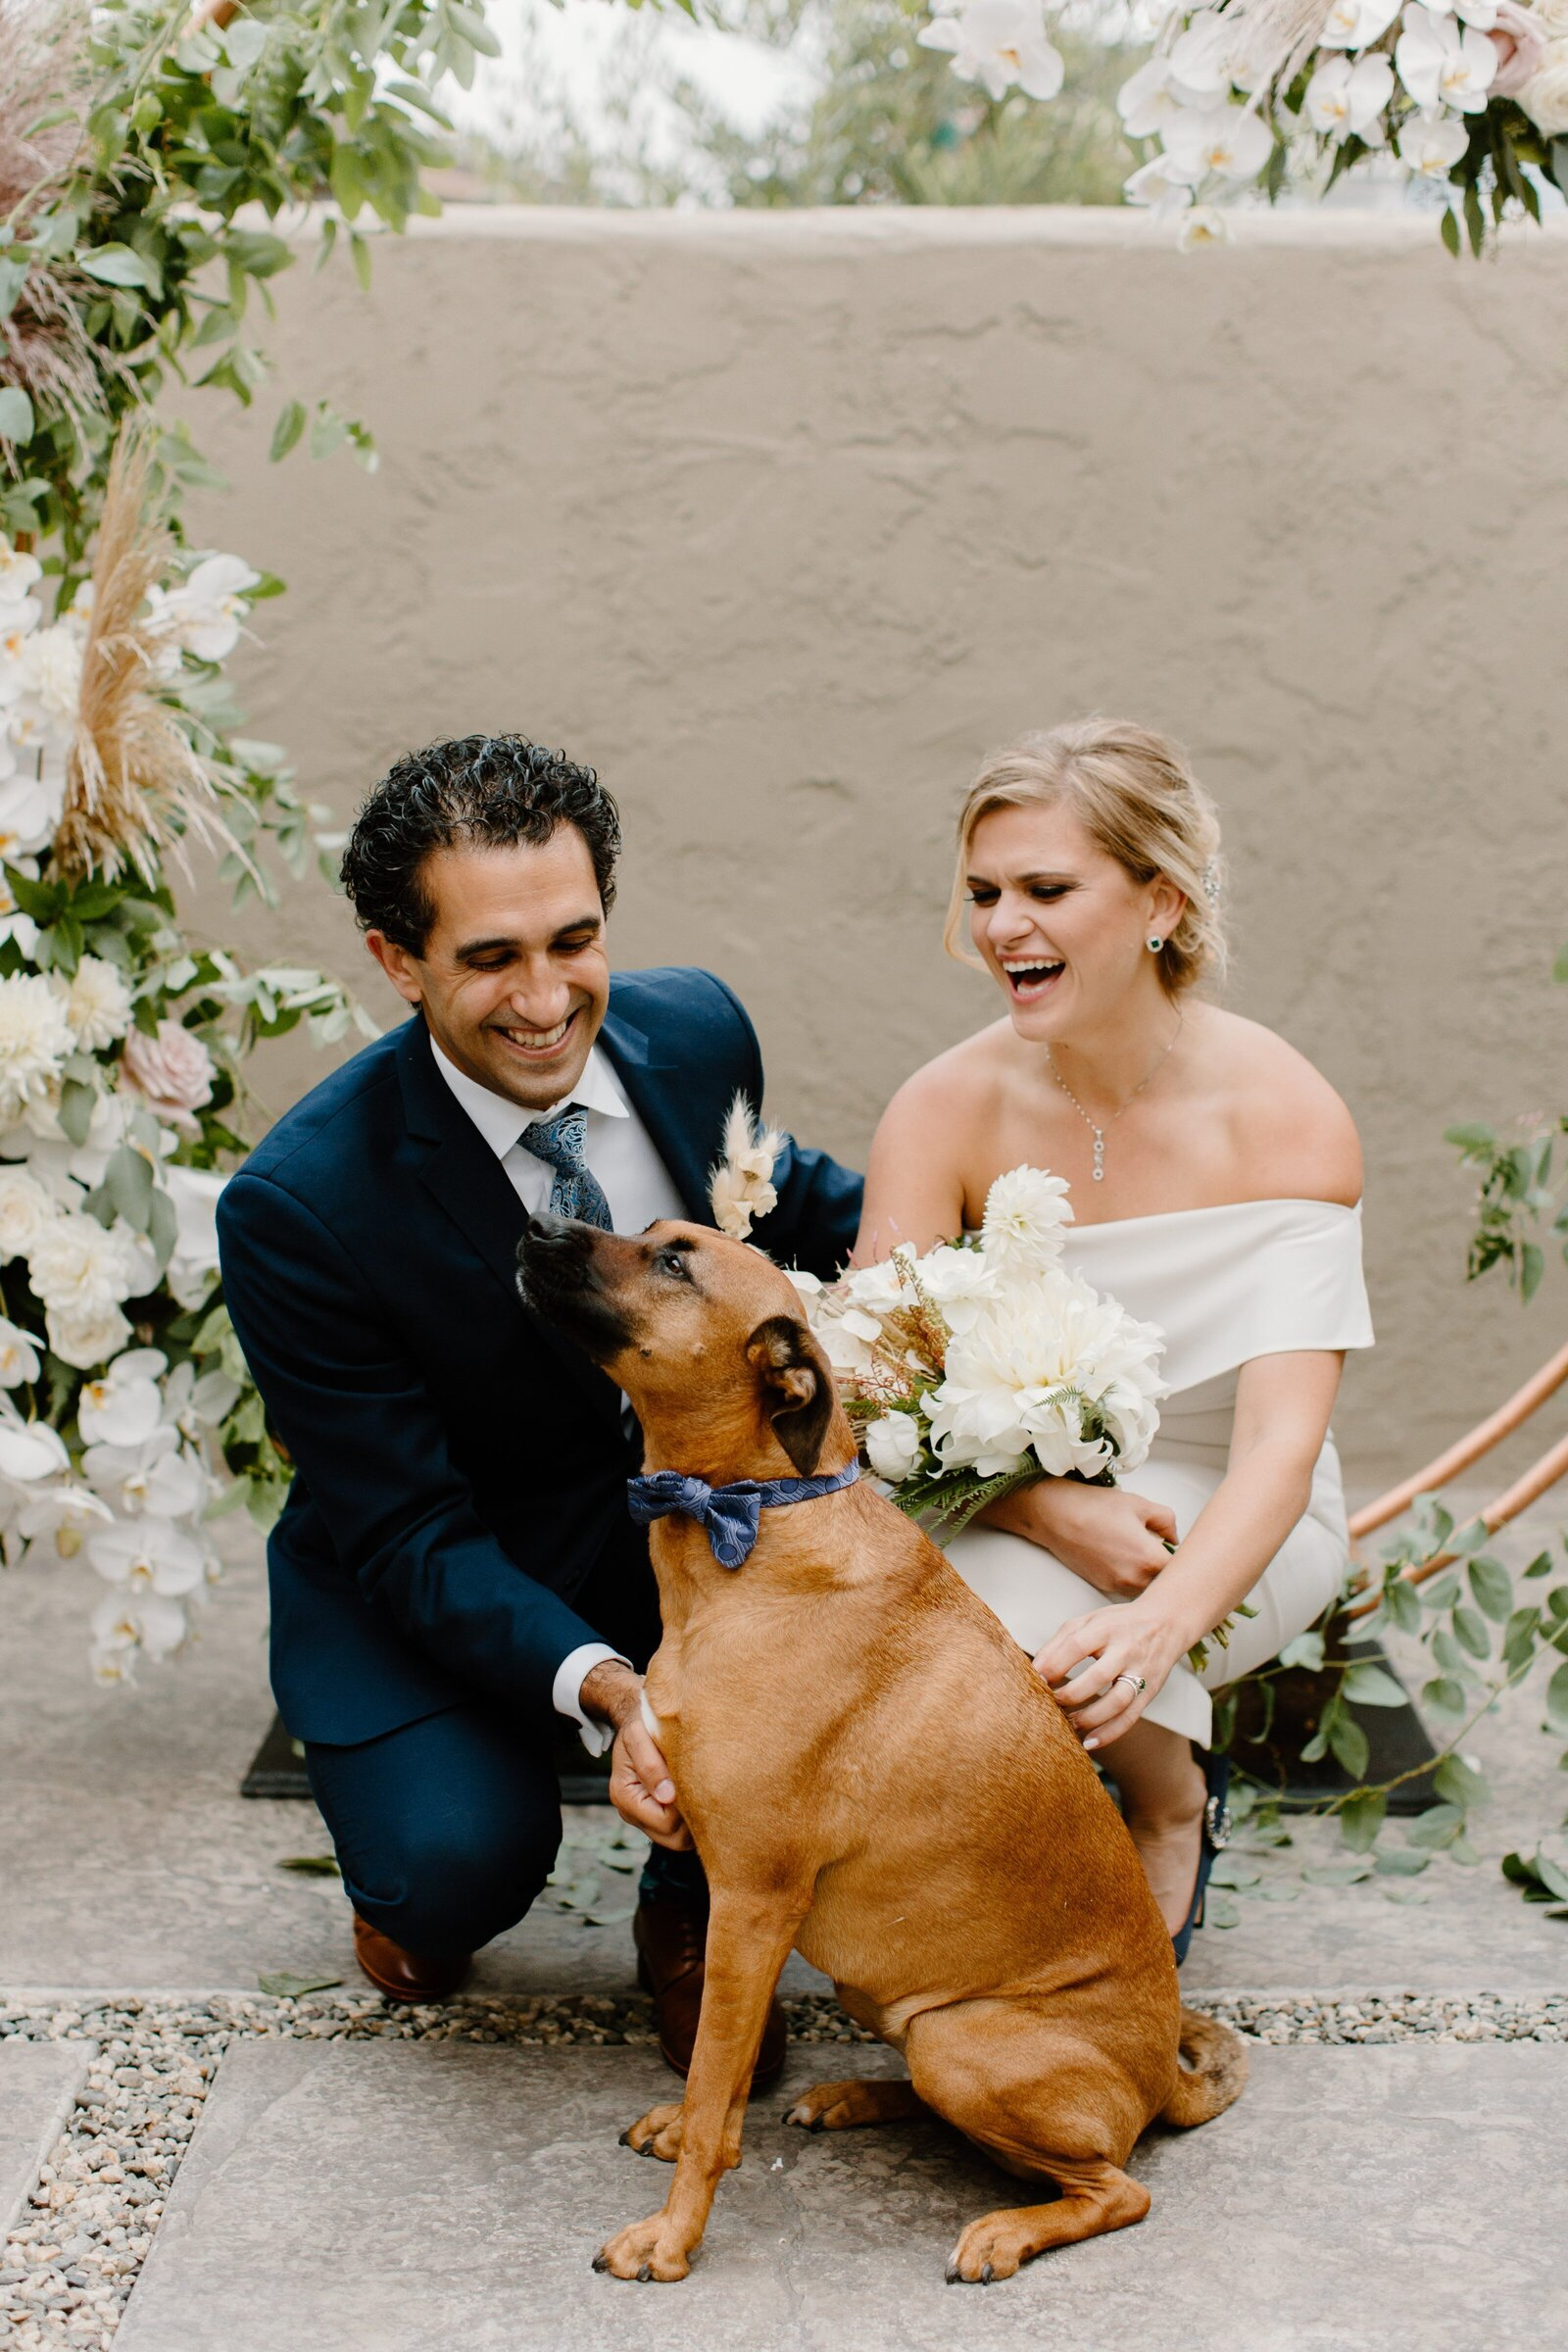 Caitlin-Arya_Intimate-Wedding-Aptos_Hannah-Berglund-Photography-317